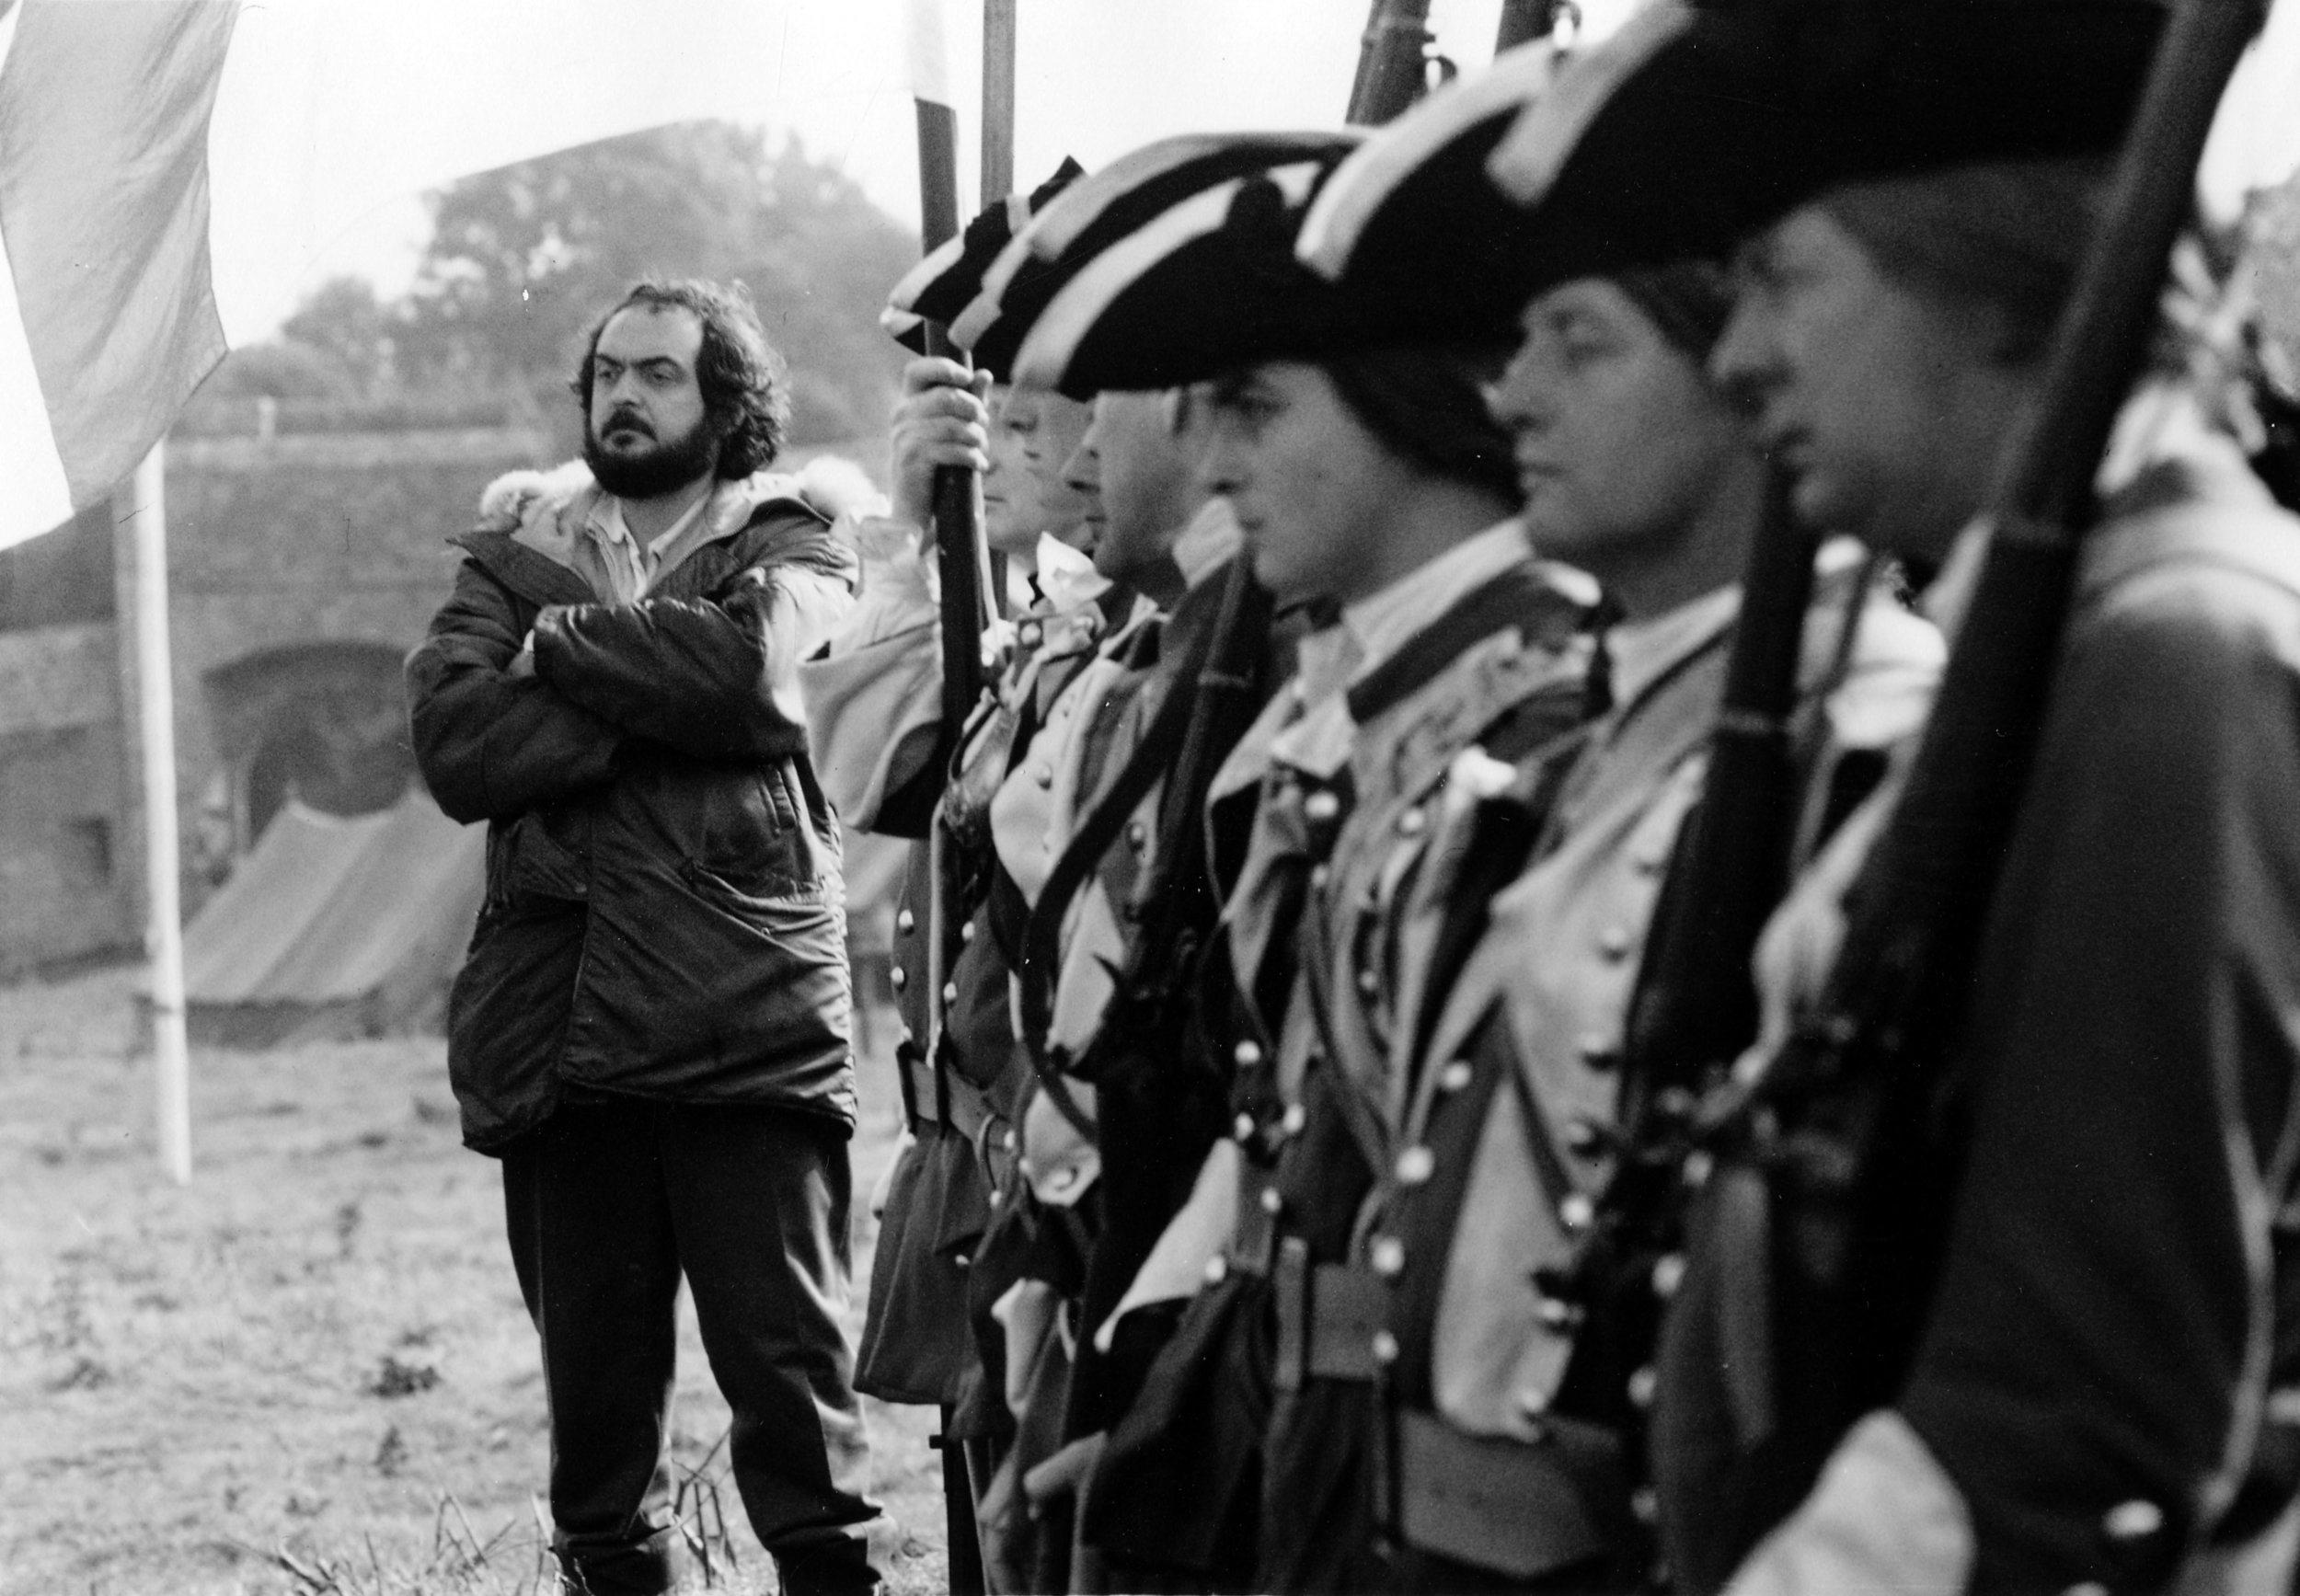 Stanley Kubrick on set, 'Barry Lyndon.' Image via Scraps from the loft.